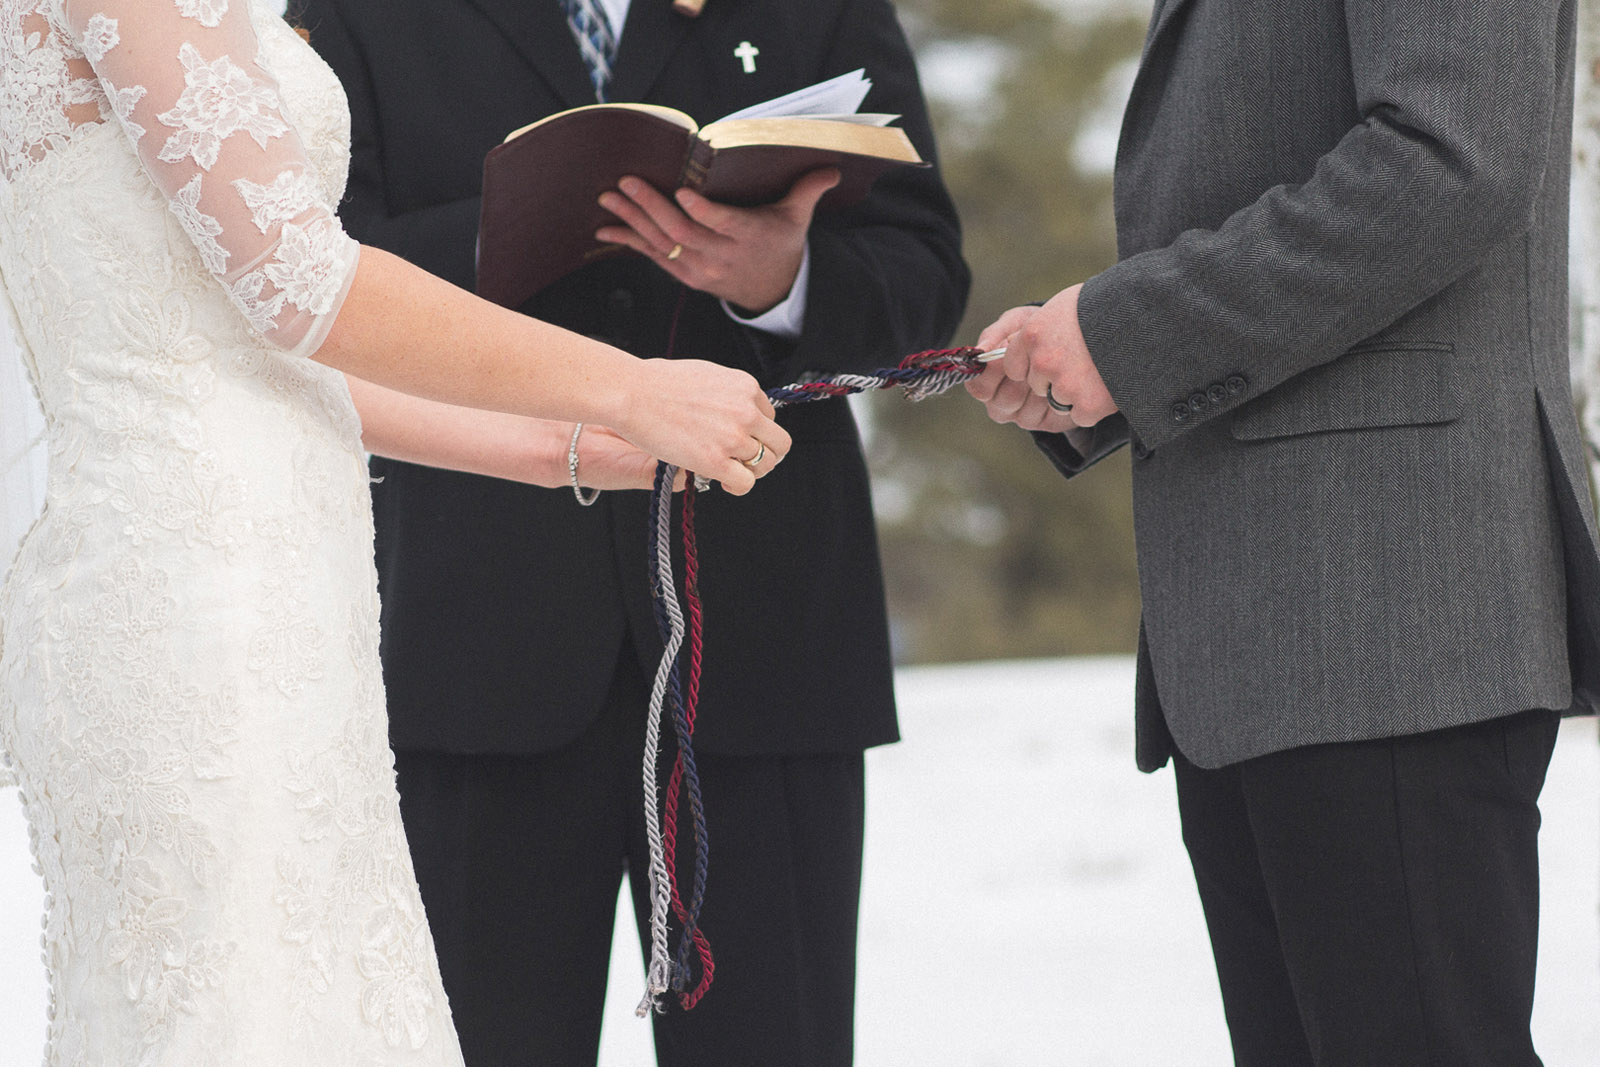 122-wedding-ceremony-in-pagosa-springs-wedding-photographer-snow-winter-wedding